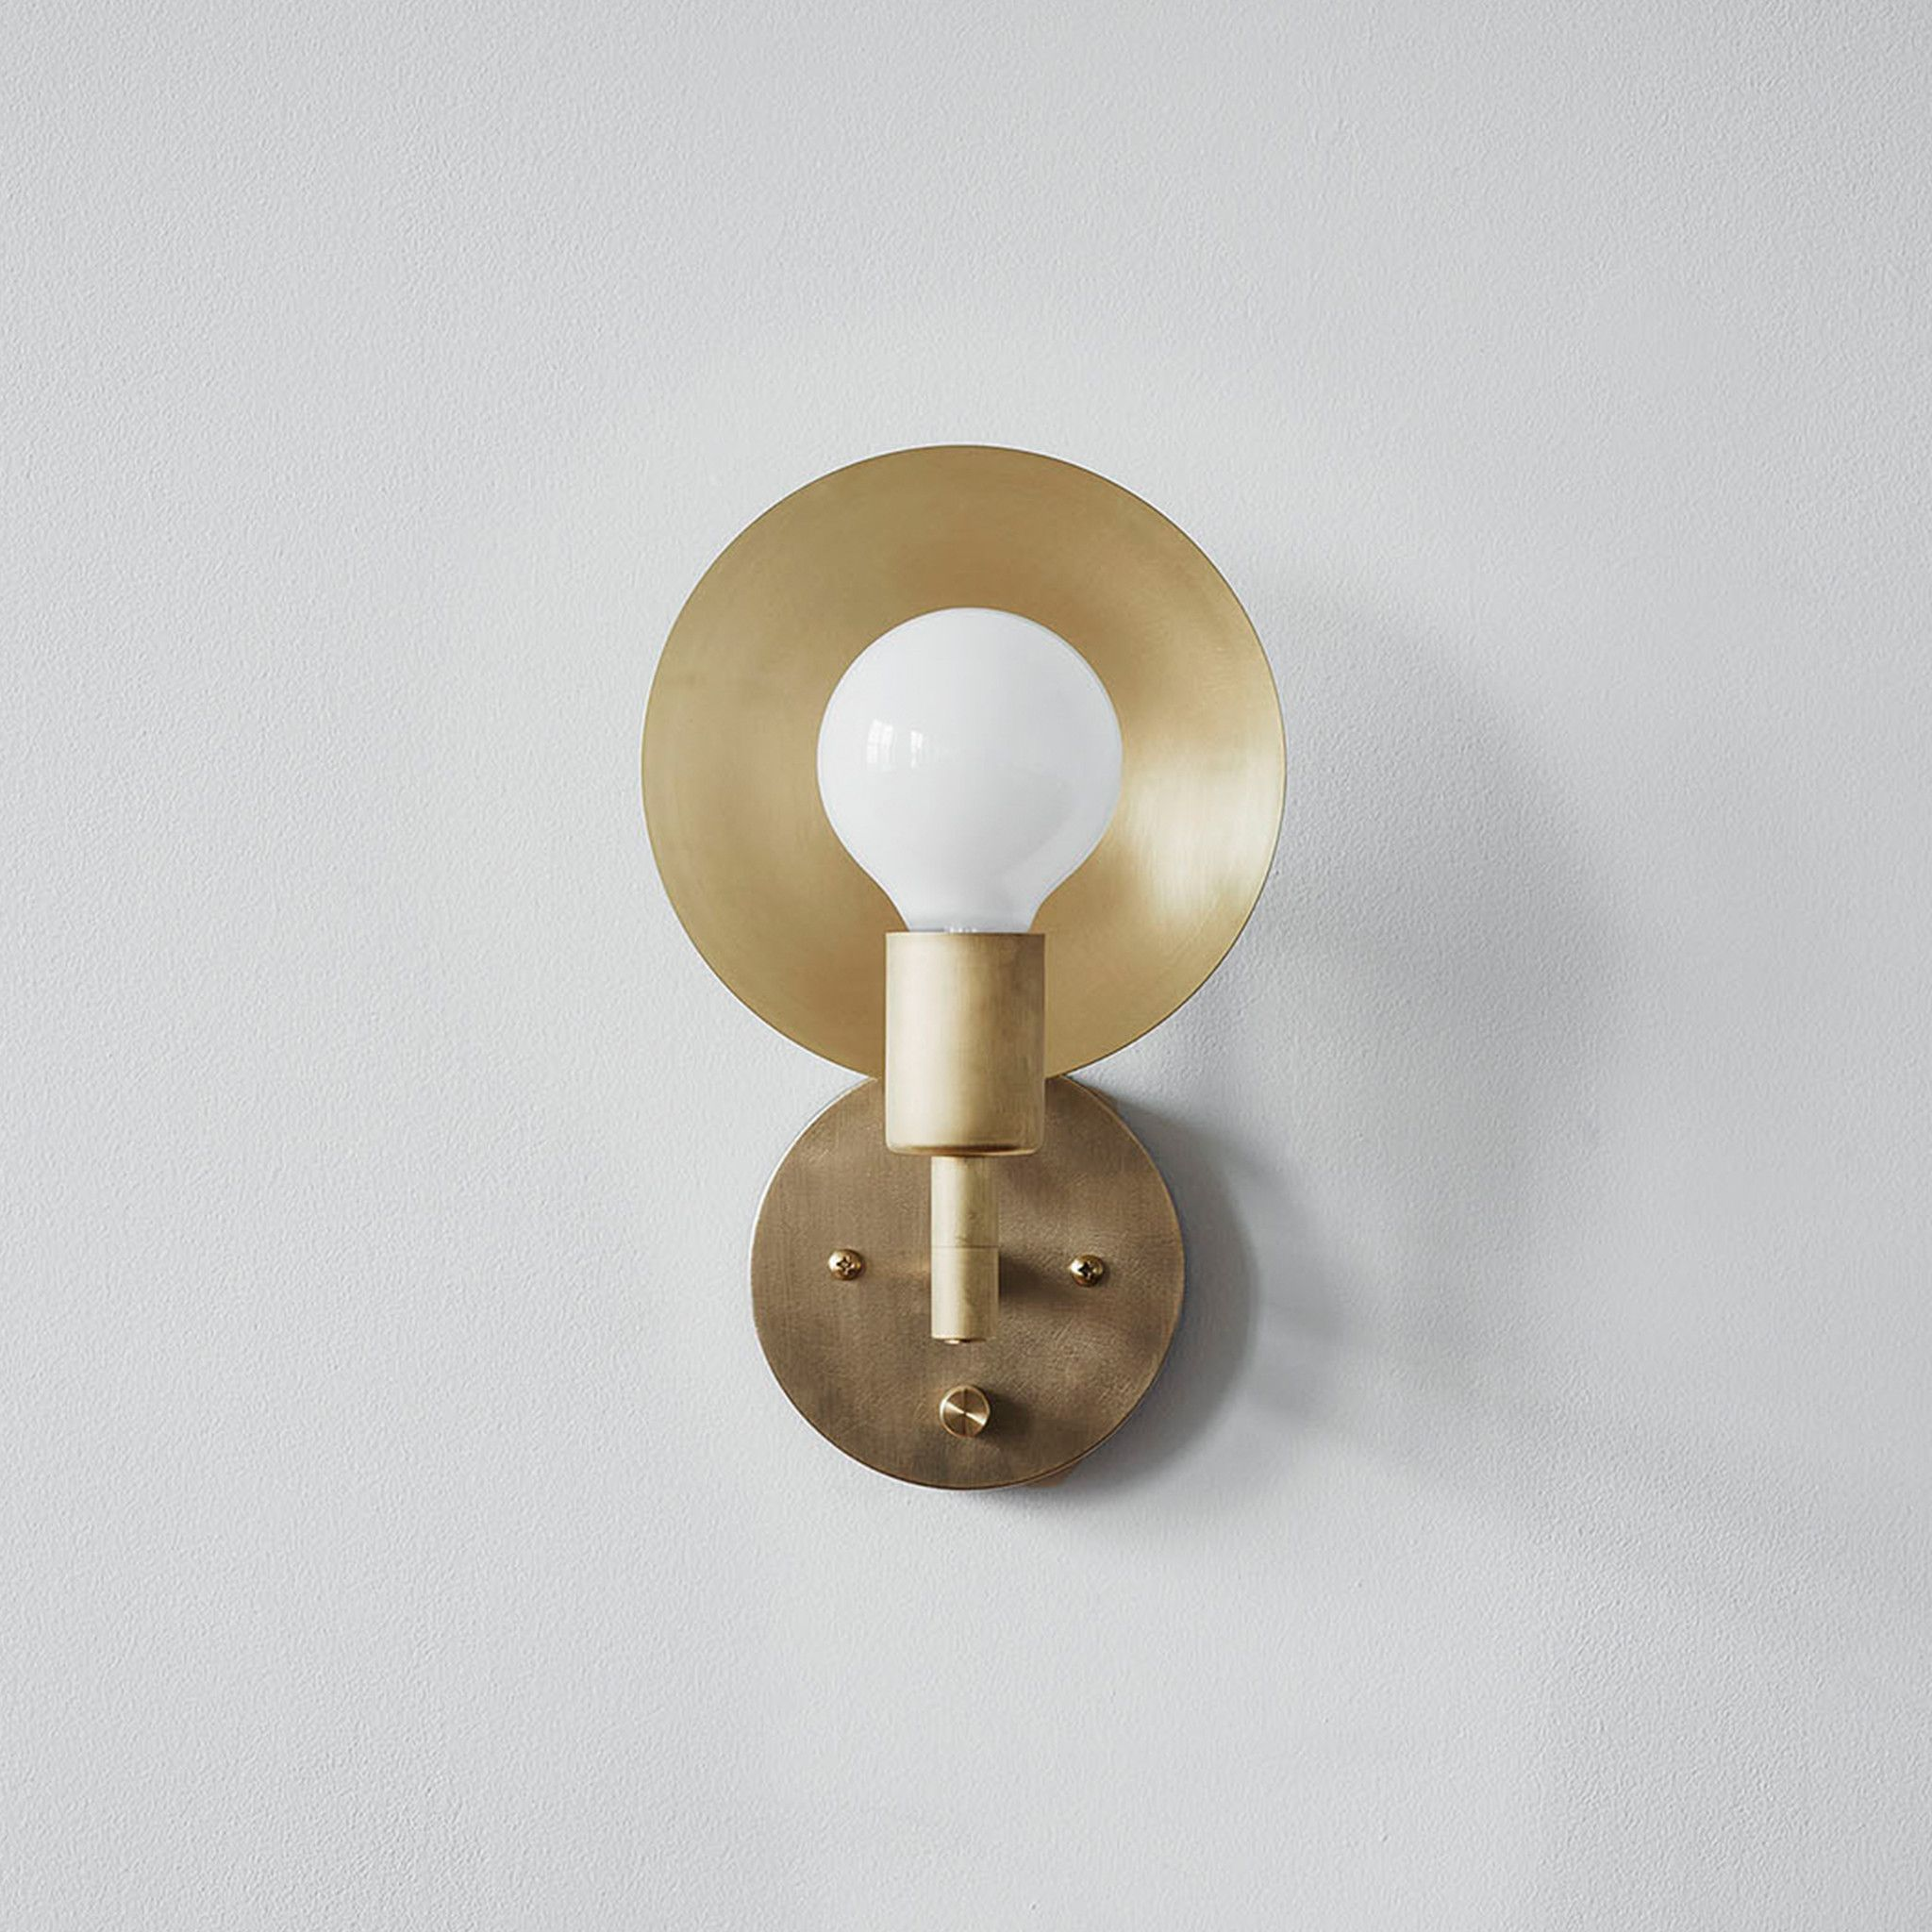 Workstead orbit sconce products modern and sconces the orbit sconce is a modern interpretation of an early american candle form with a arubaitofo Gallery